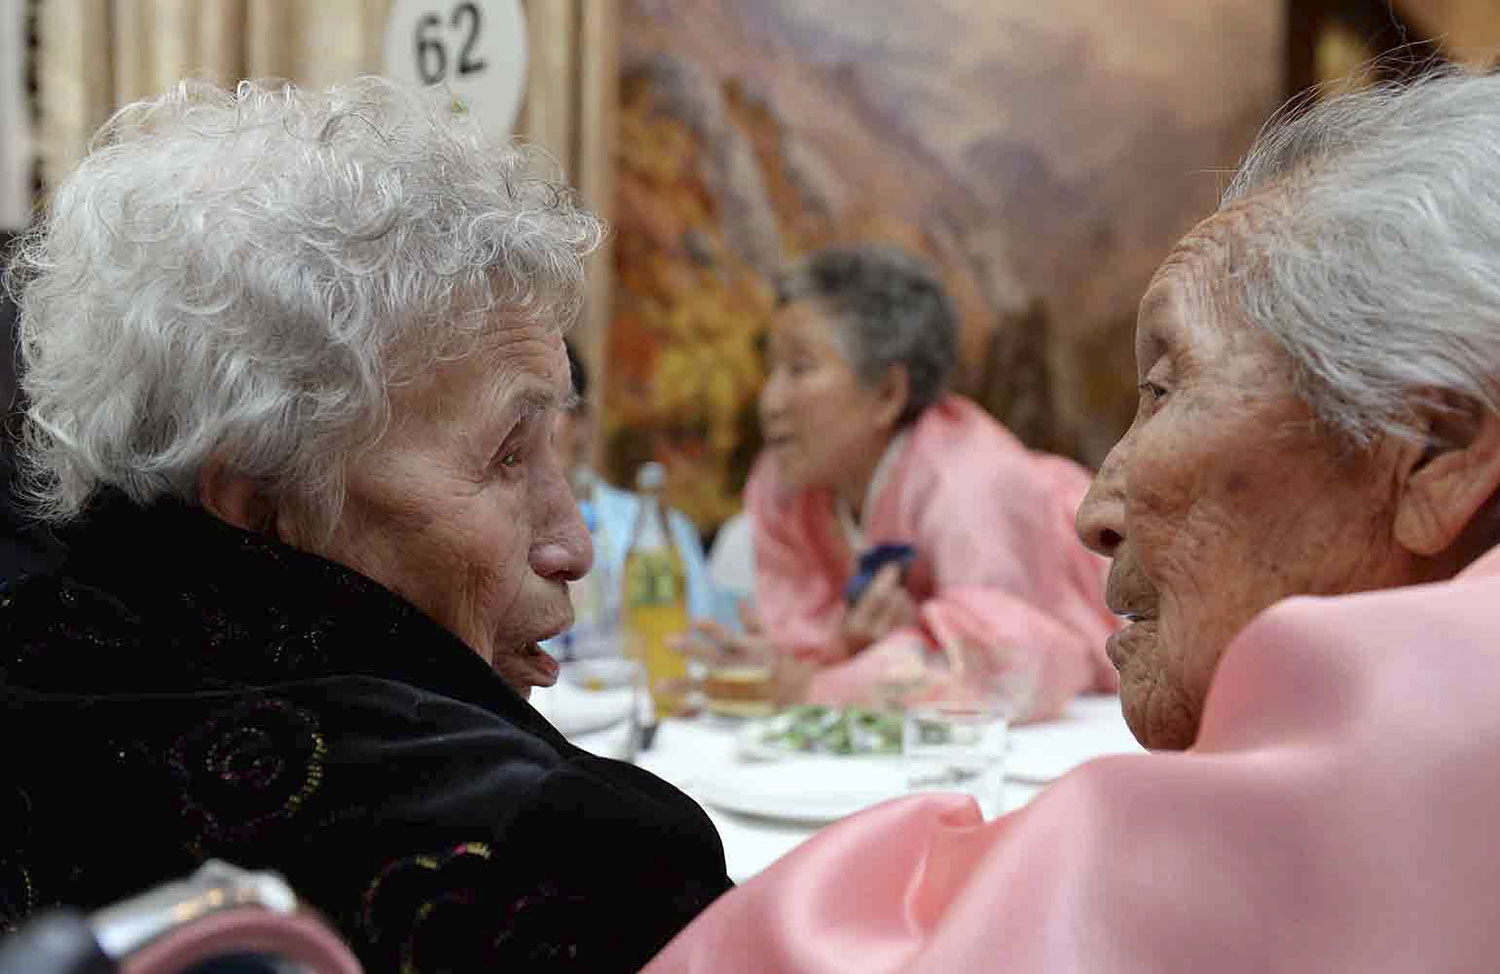 South Korean Lee Young-Shil, 88, meets with her North Korean younger sister Kim Seok-Ryu, 80, during the Separated Family Reunion Meeting at Diamond Mountain resort in North Korea on Feb. 20, 2014.